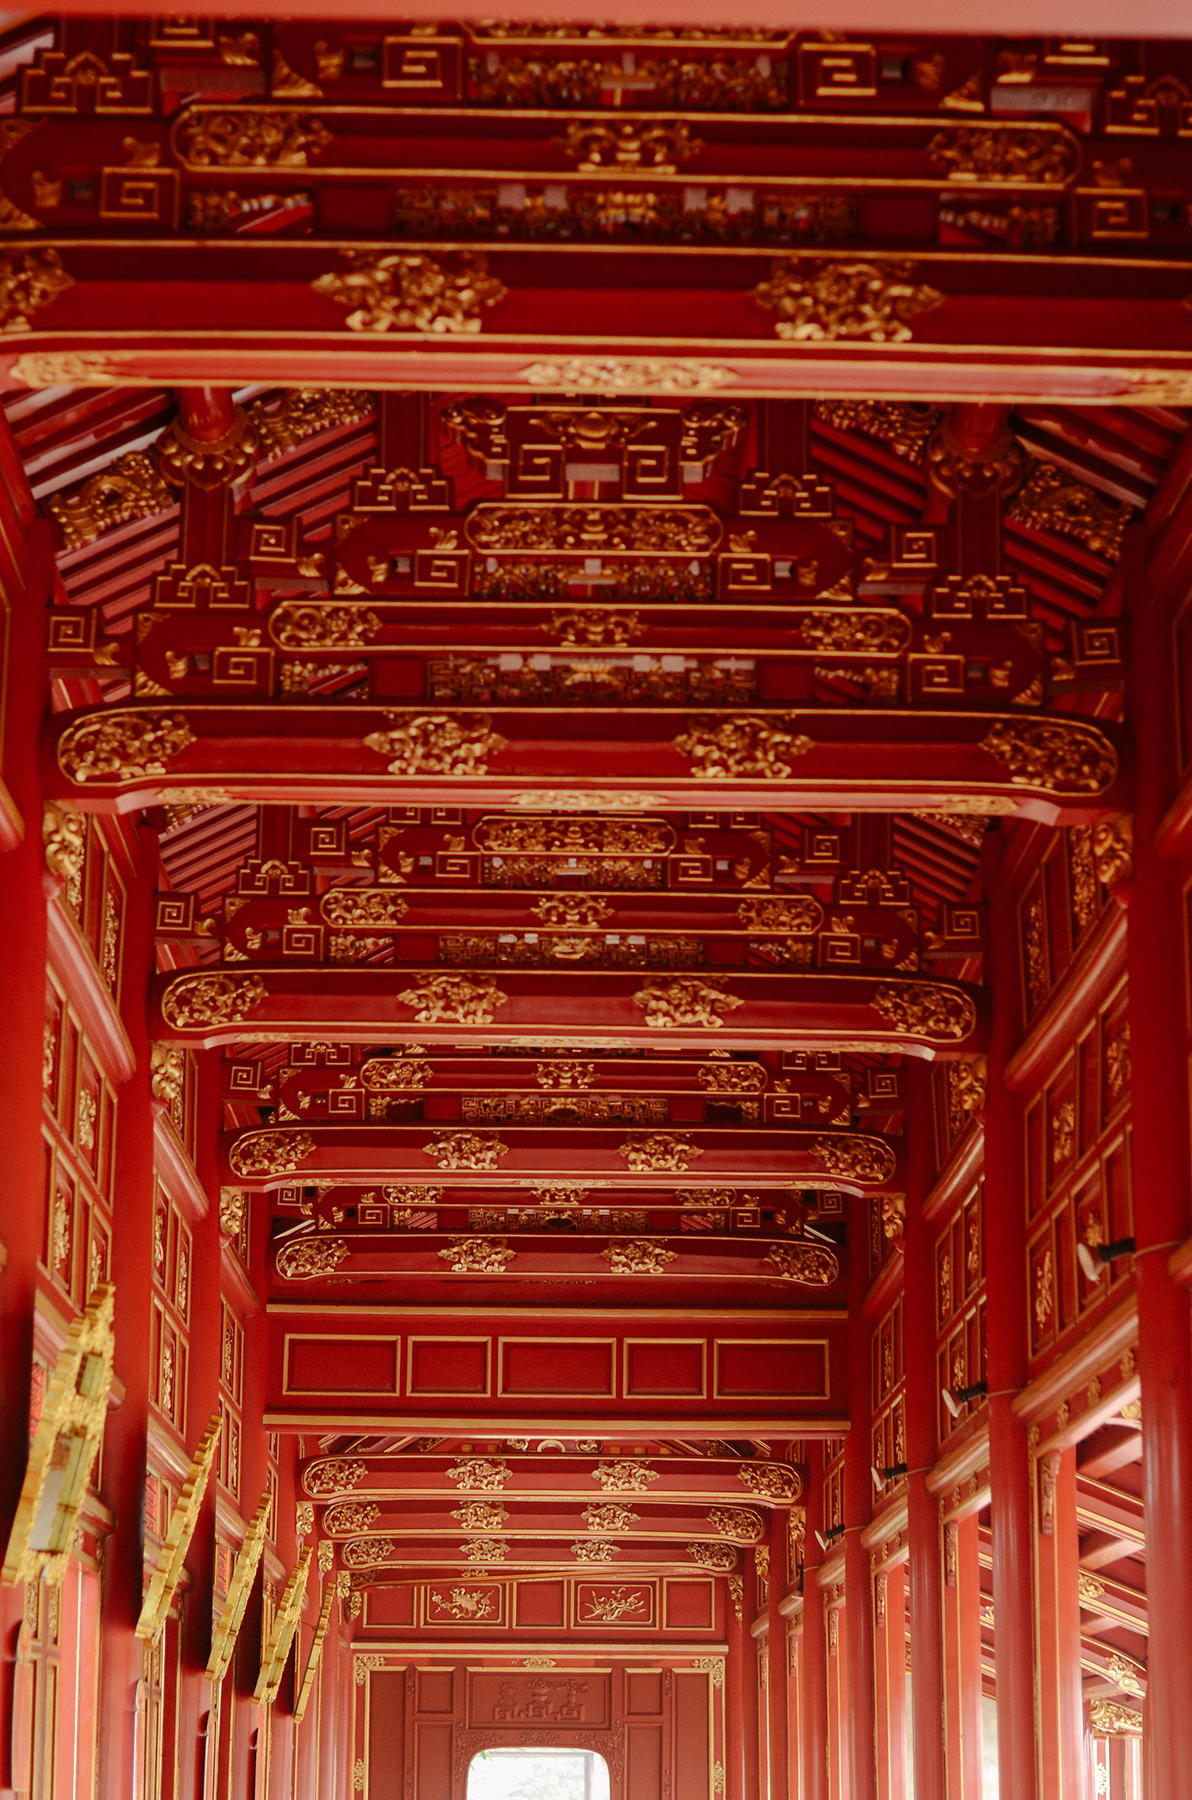 The interiors are slowly and painstakingly being restored, using traditional techniques